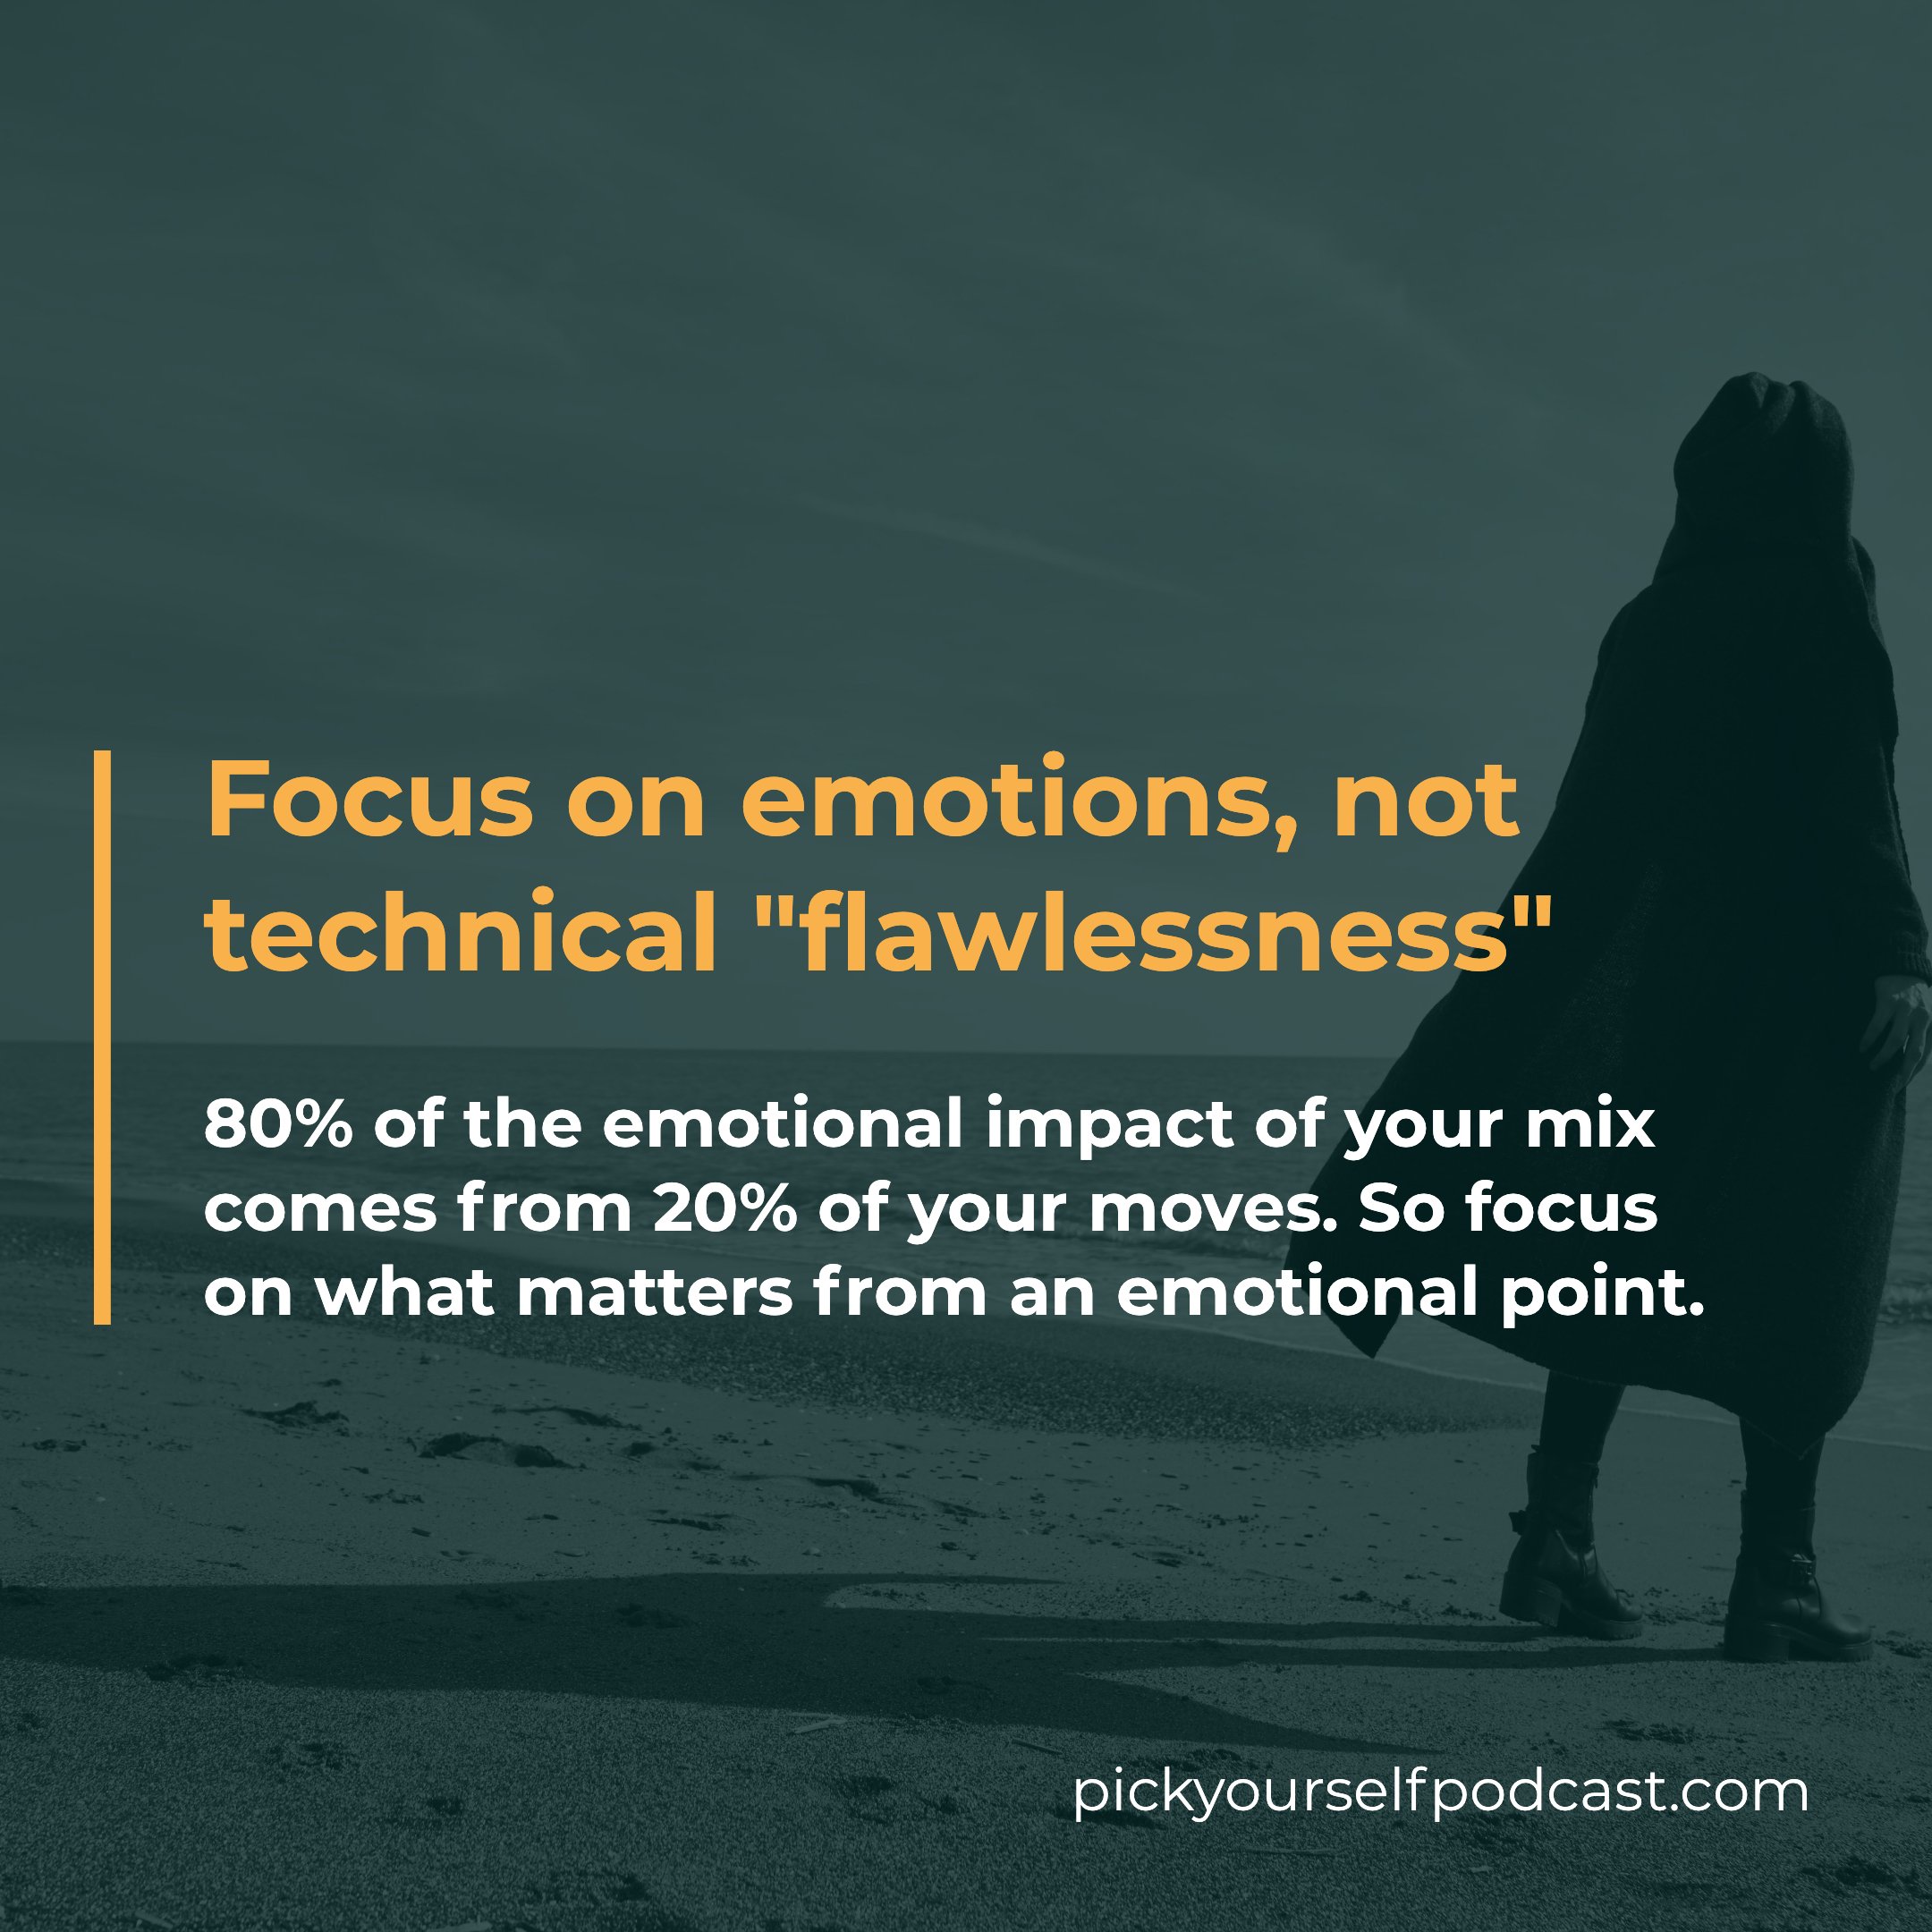 When you want to get better at mixing, focus on emotions, not technical flawlessness